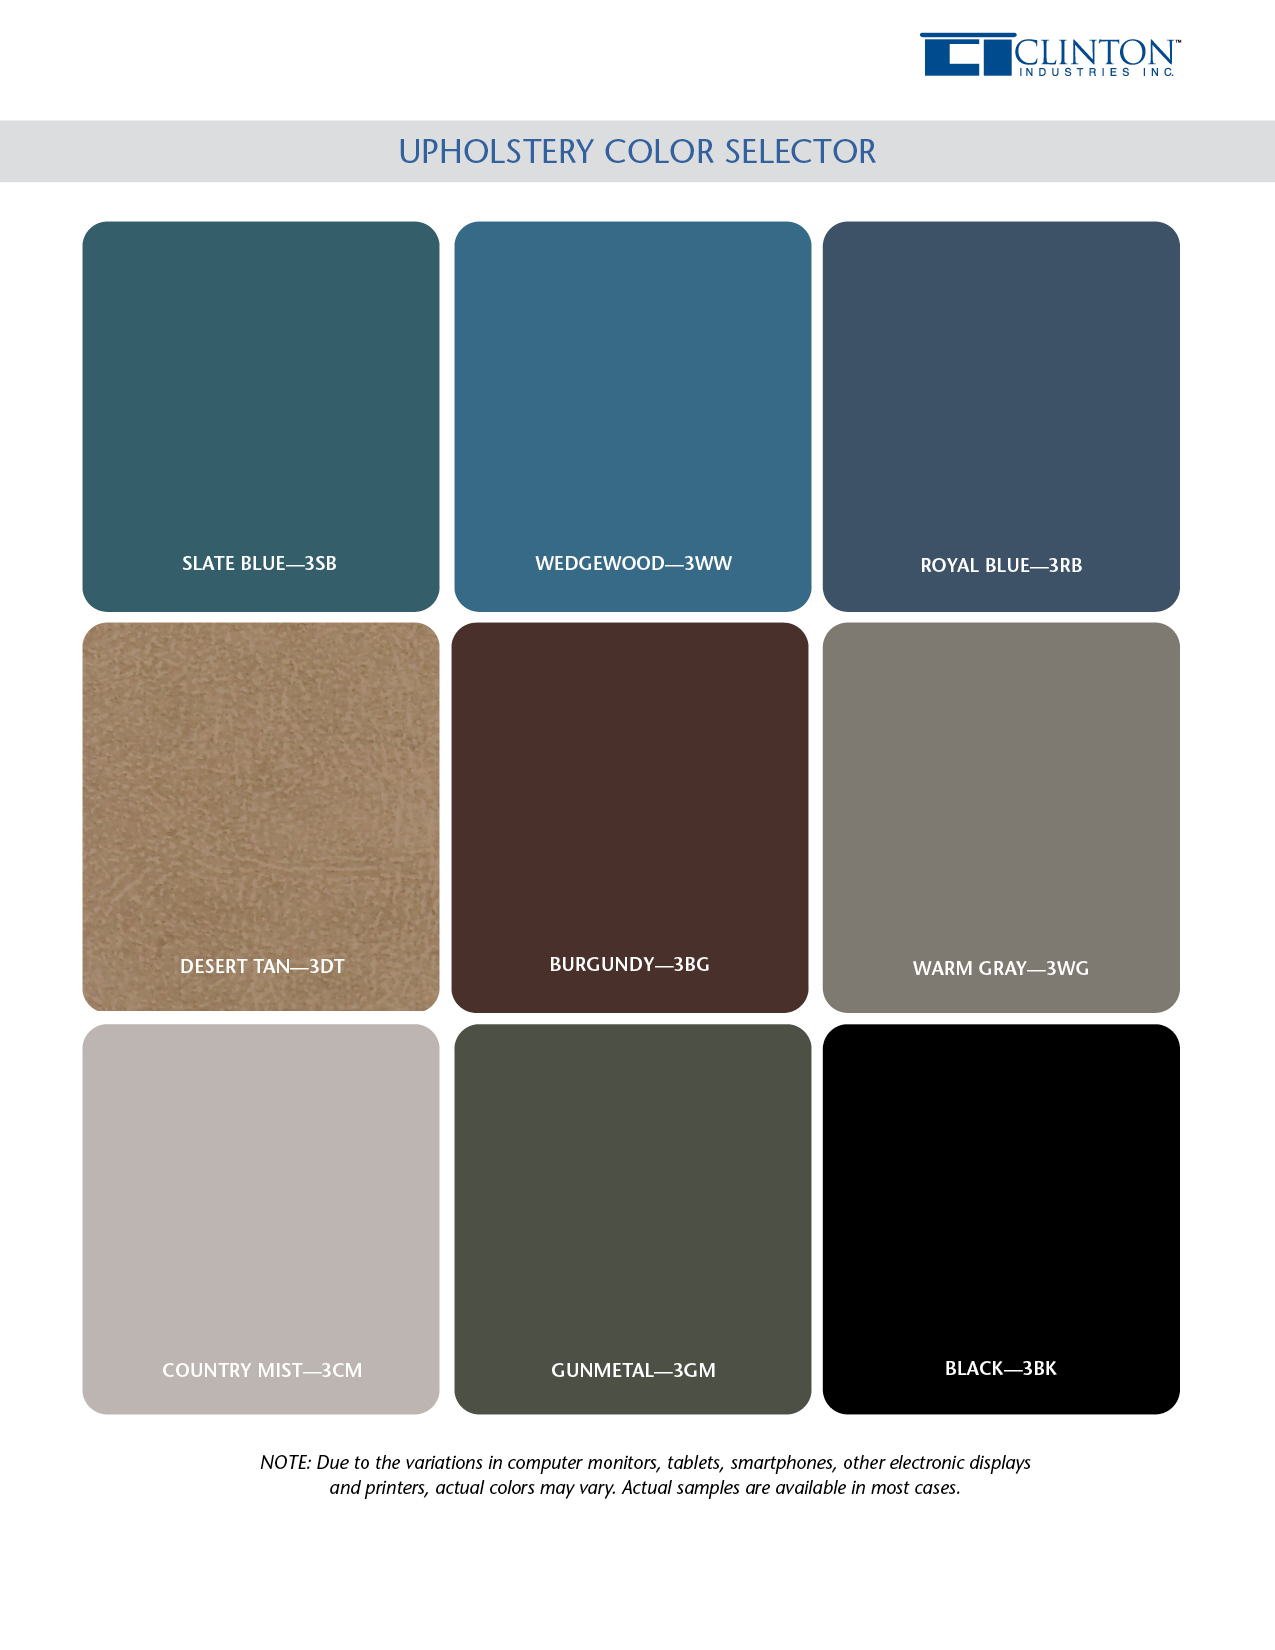 Upholstery Color Selector